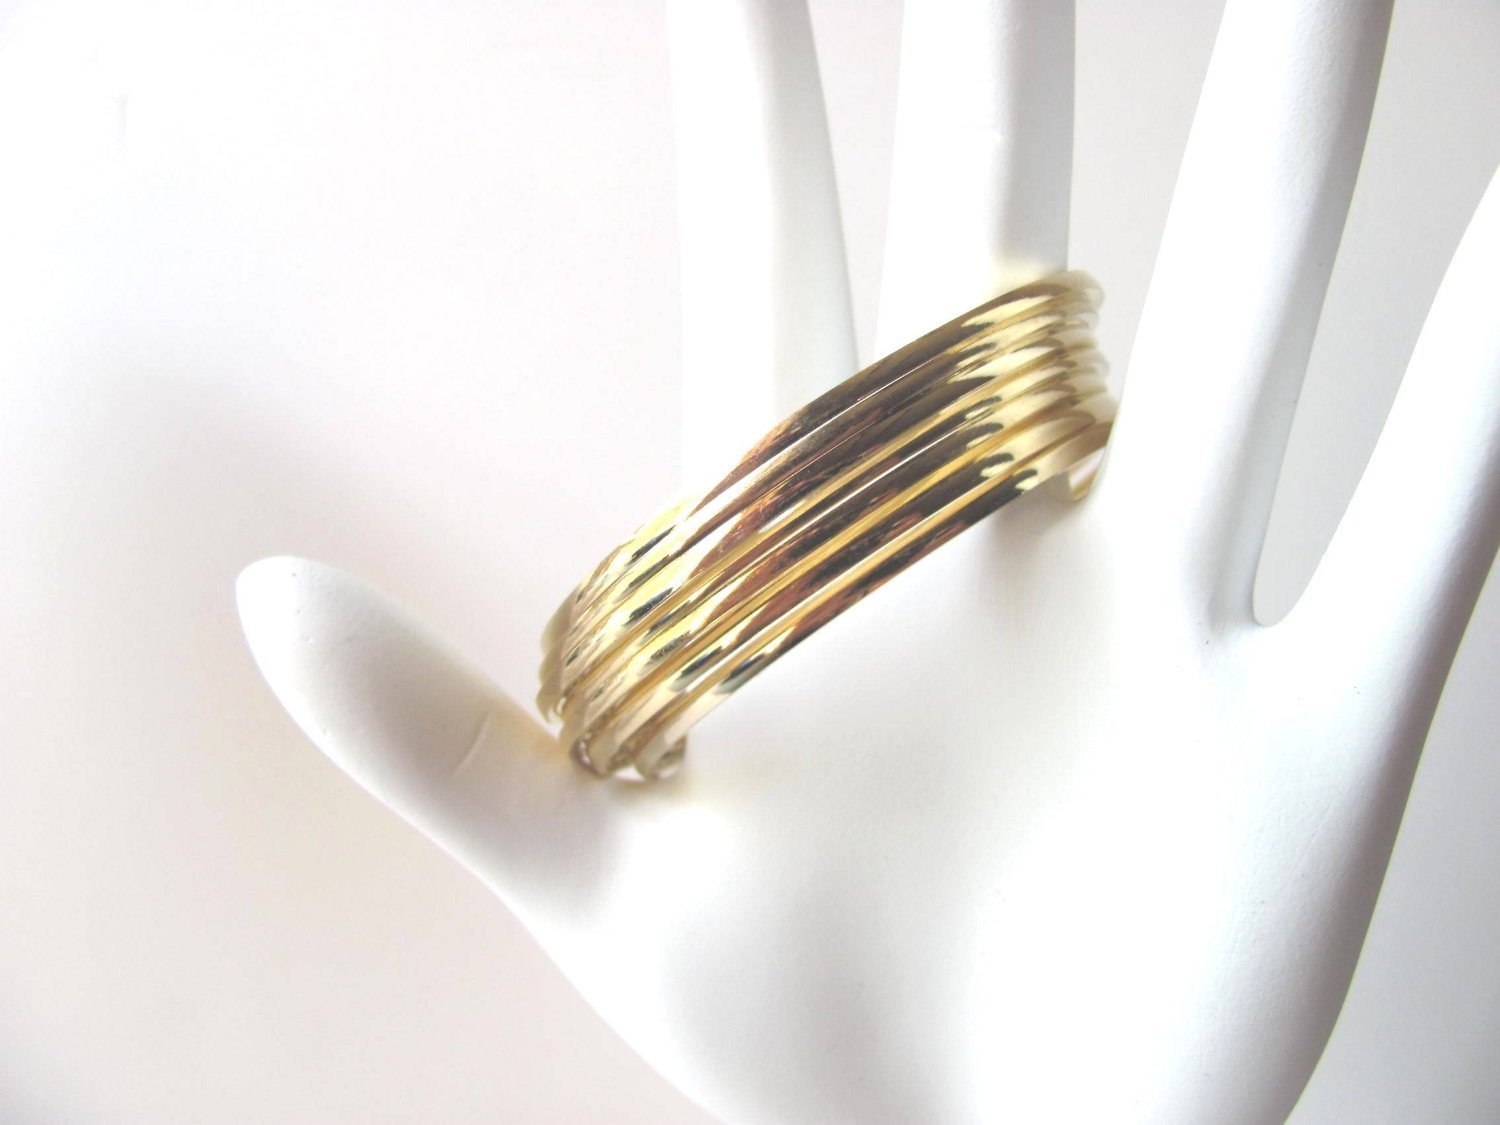 Bangle Bracelets Gold Overlay 14k Gold Overlay Bangle